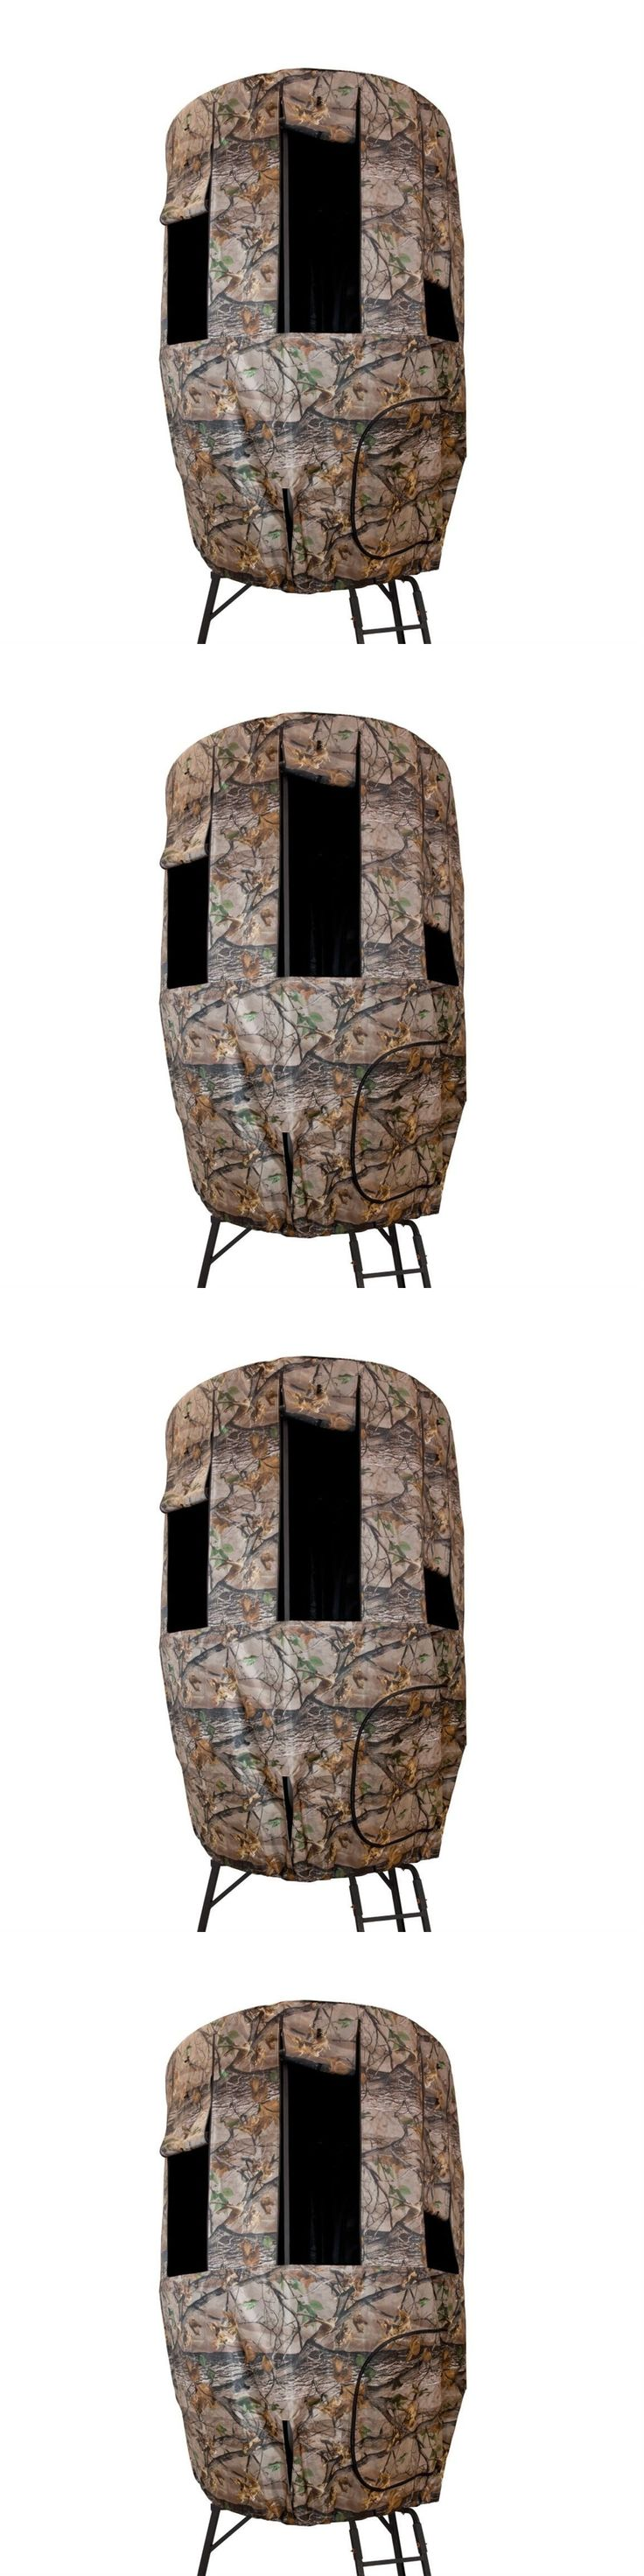 Tree Stands 52508: Tripod Deer Stand Covers Camo Blind Roof Weather Game Deer Hunter Bow Rifle New -> BUY IT NOW ONLY: $229.5 on eBay!